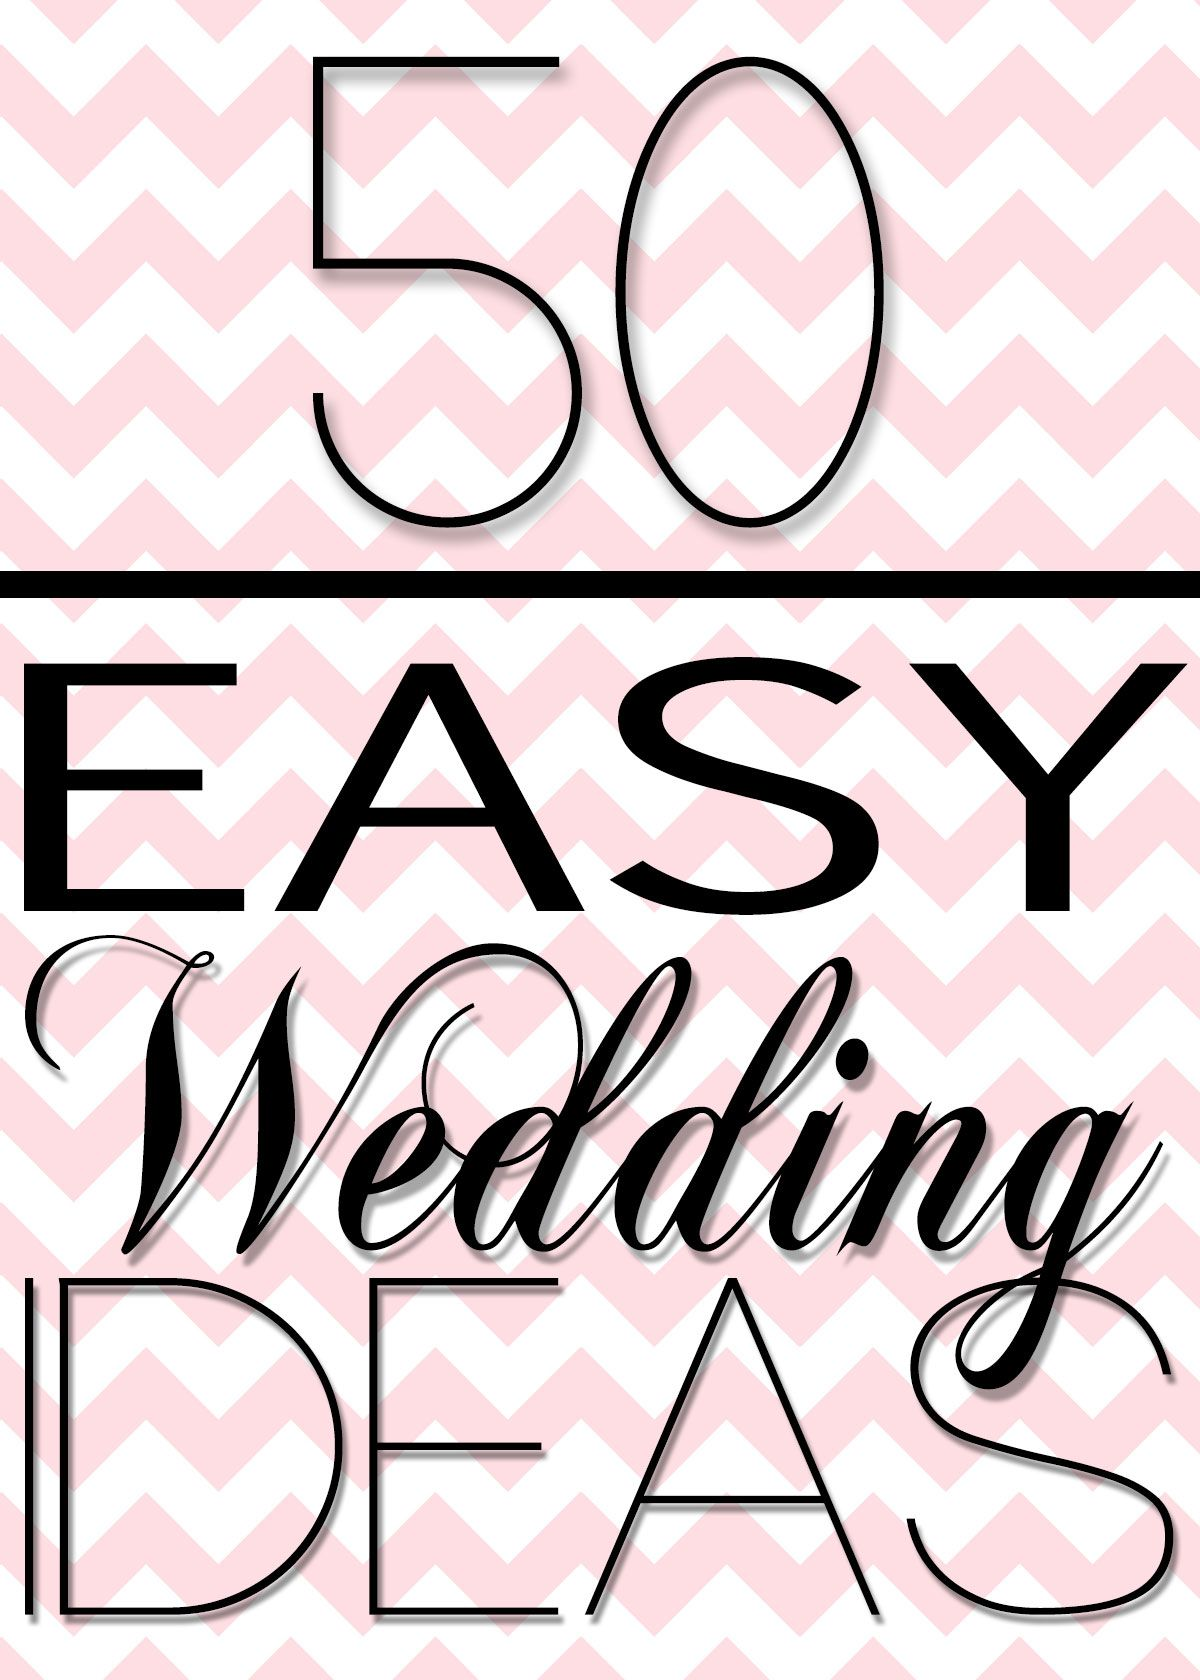 50 Easy Wedding Ideas Wedding Inspiration Pinterest 50th